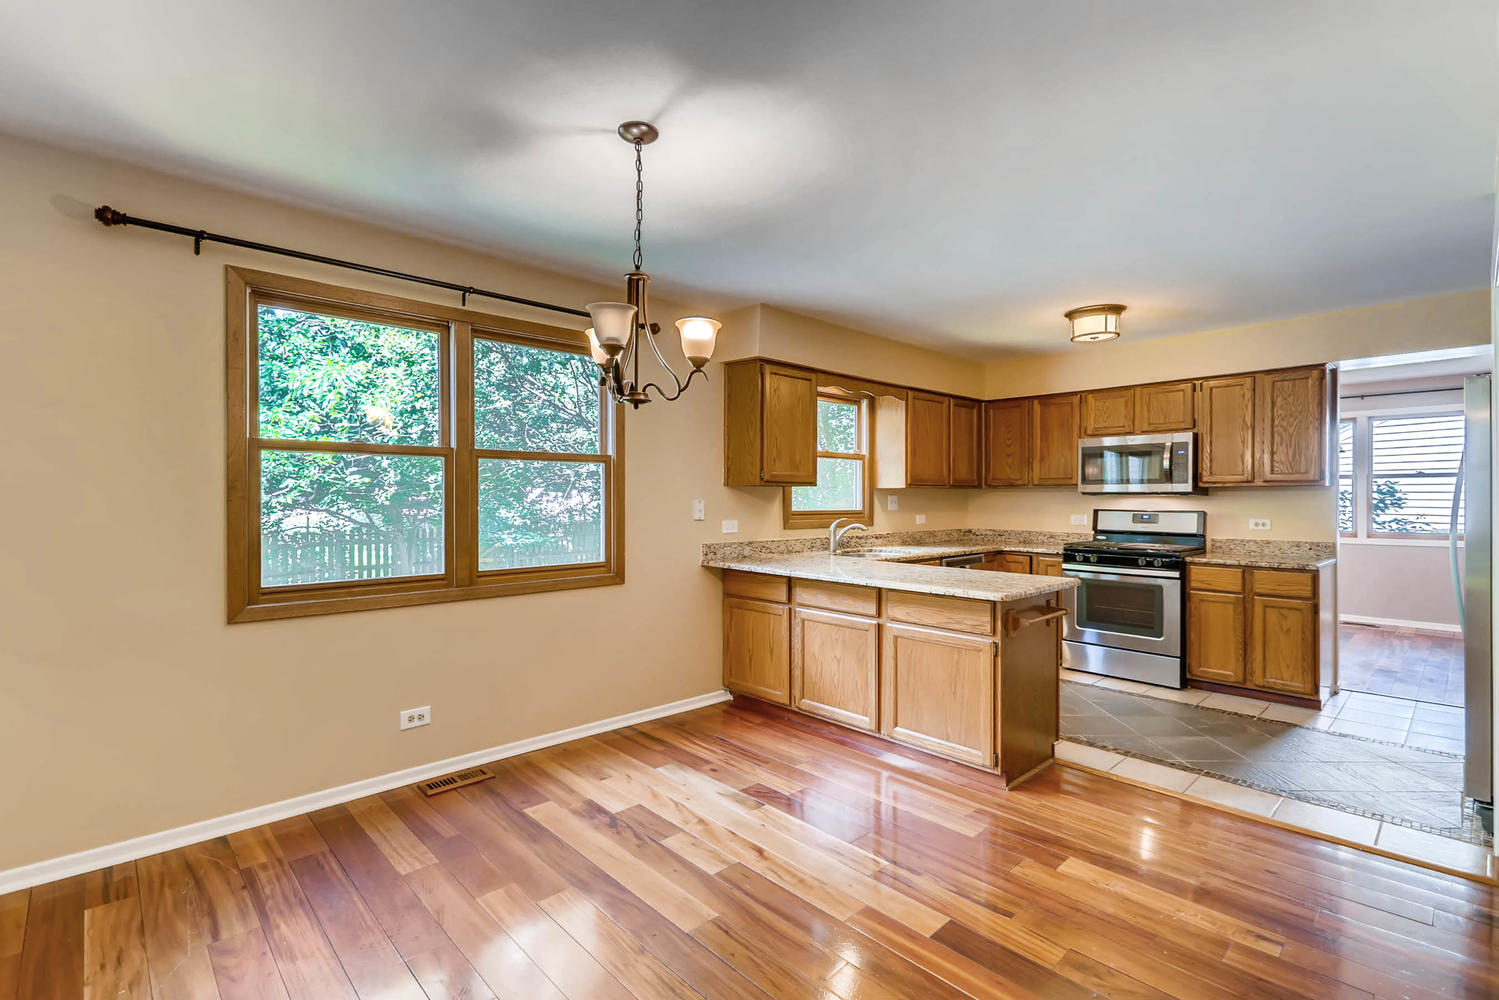 Photo of 2133 Cherrywood Circle, Naperville, IL, 60565